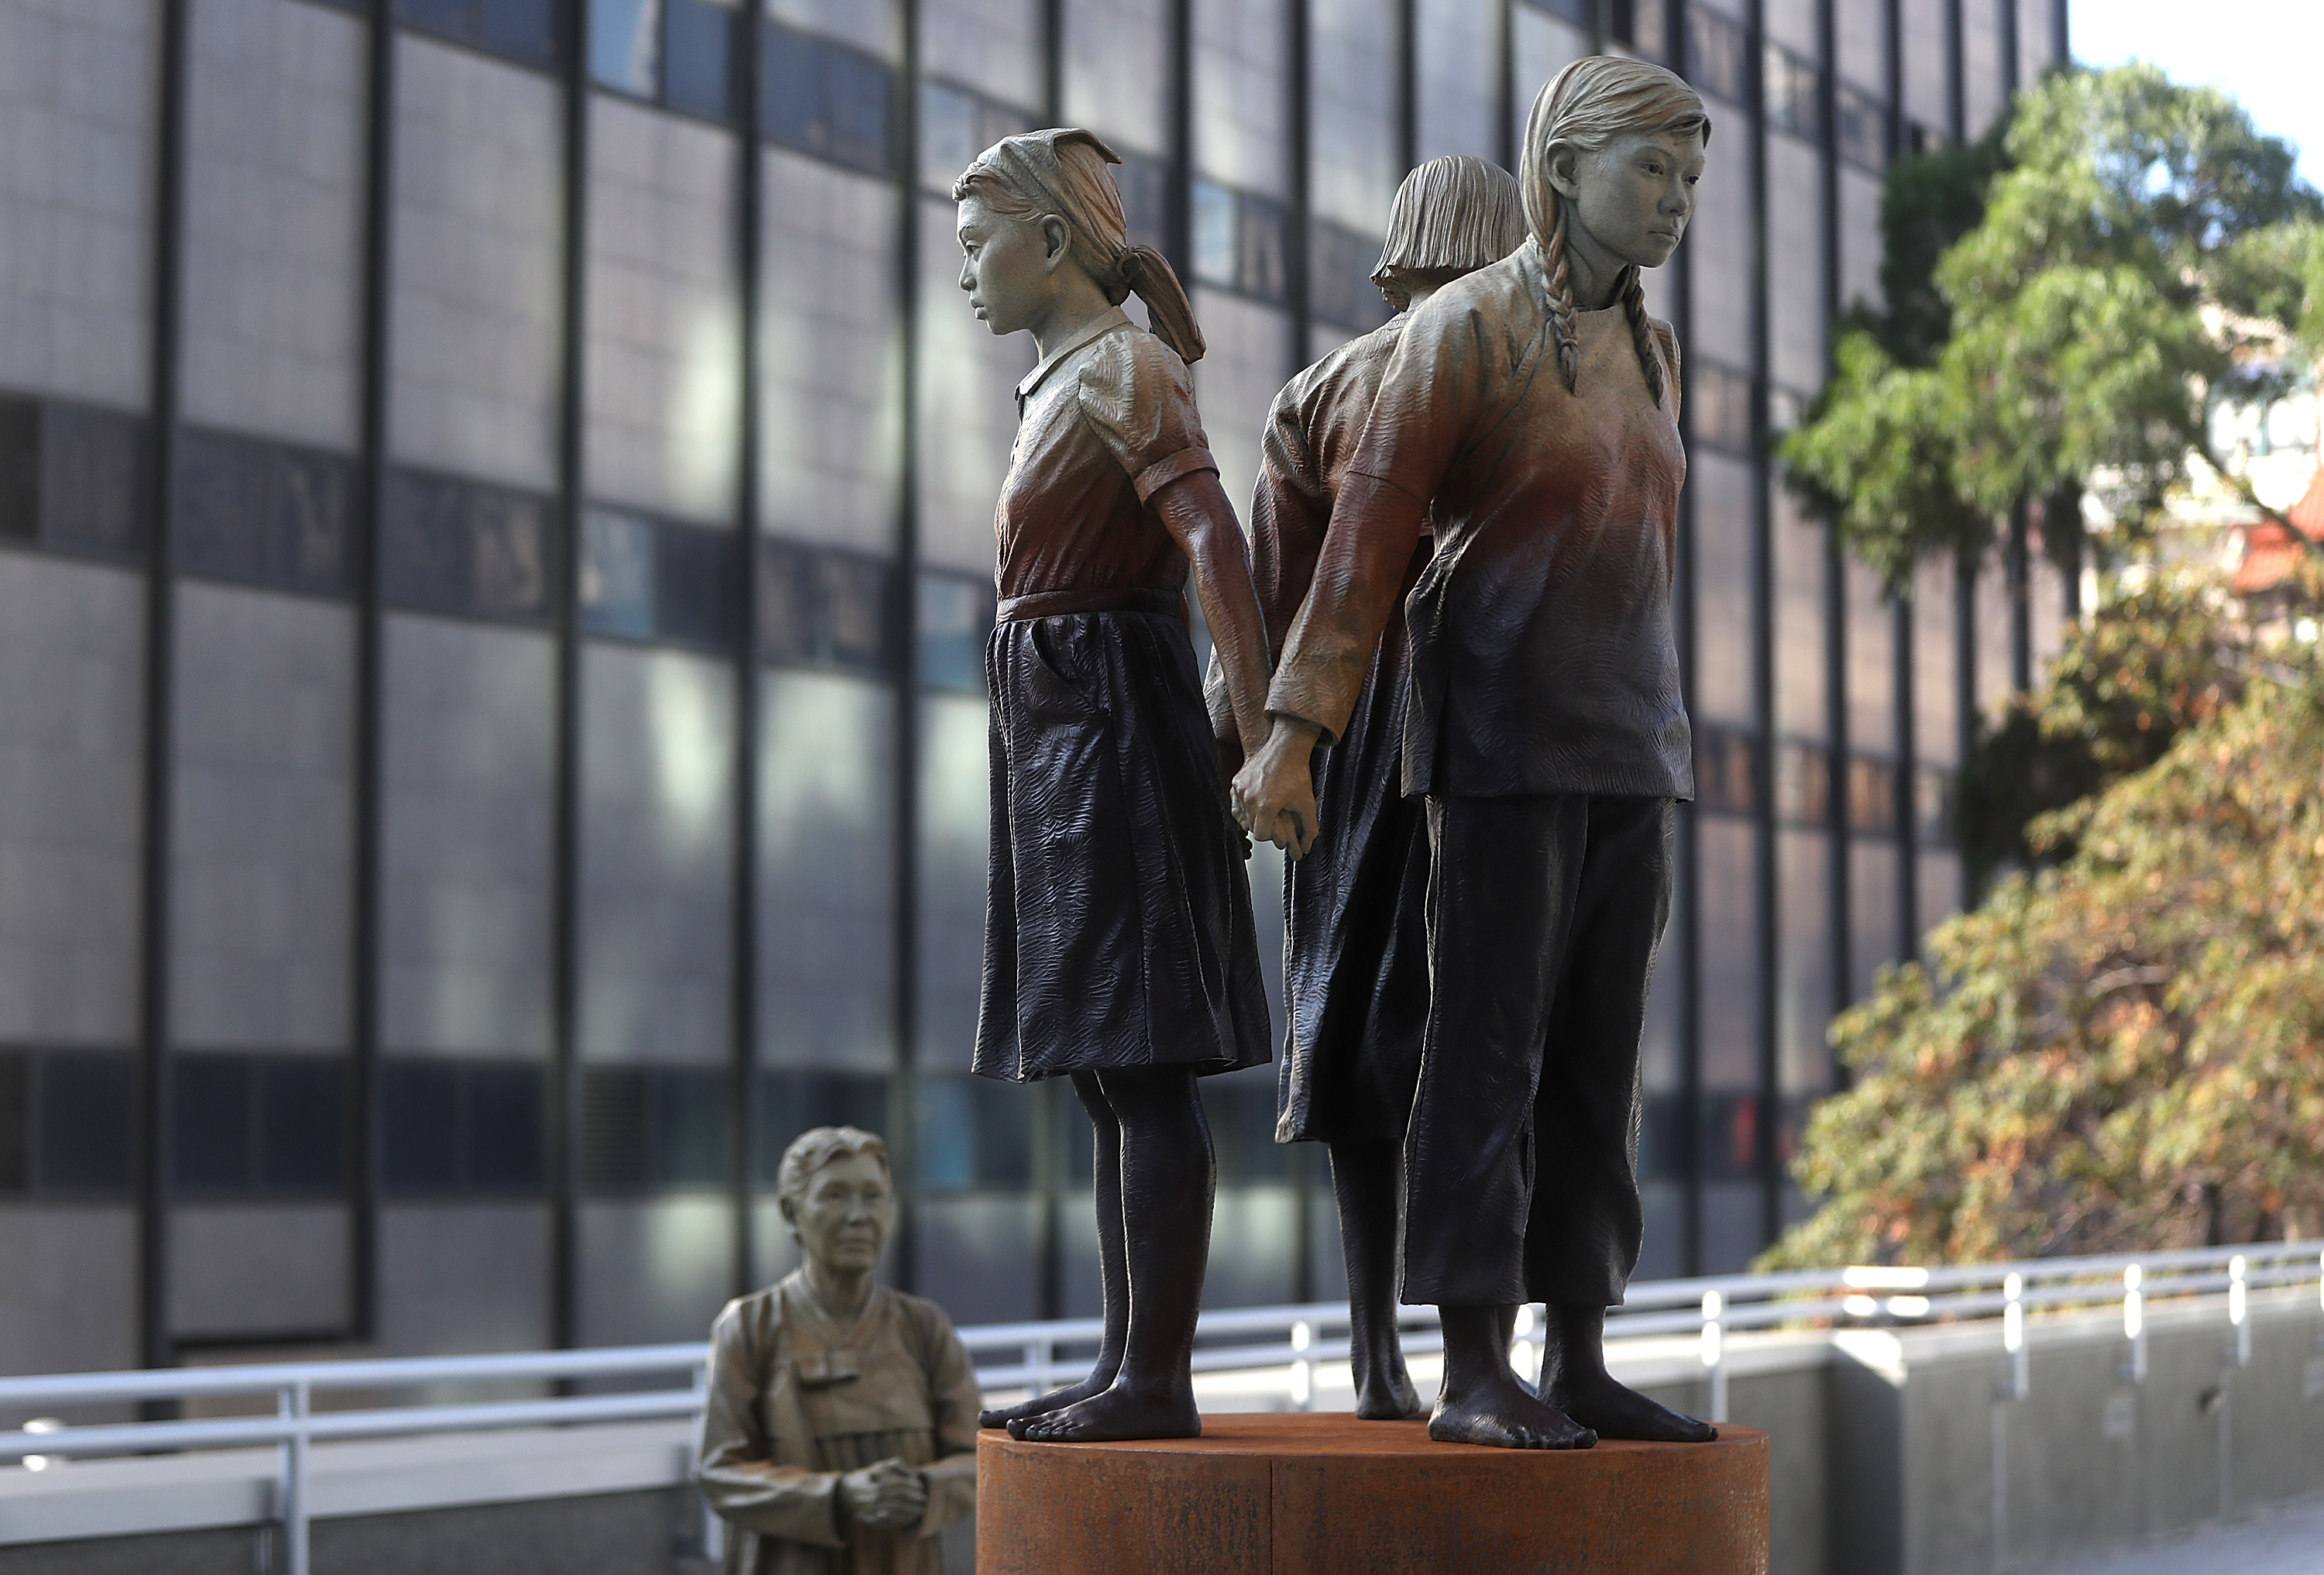 The statue  Comfort Women  Column of Strength by artist Steven Whyte is displayed at St. Mary's Square on November 1, 2017 in San Francisco, California.